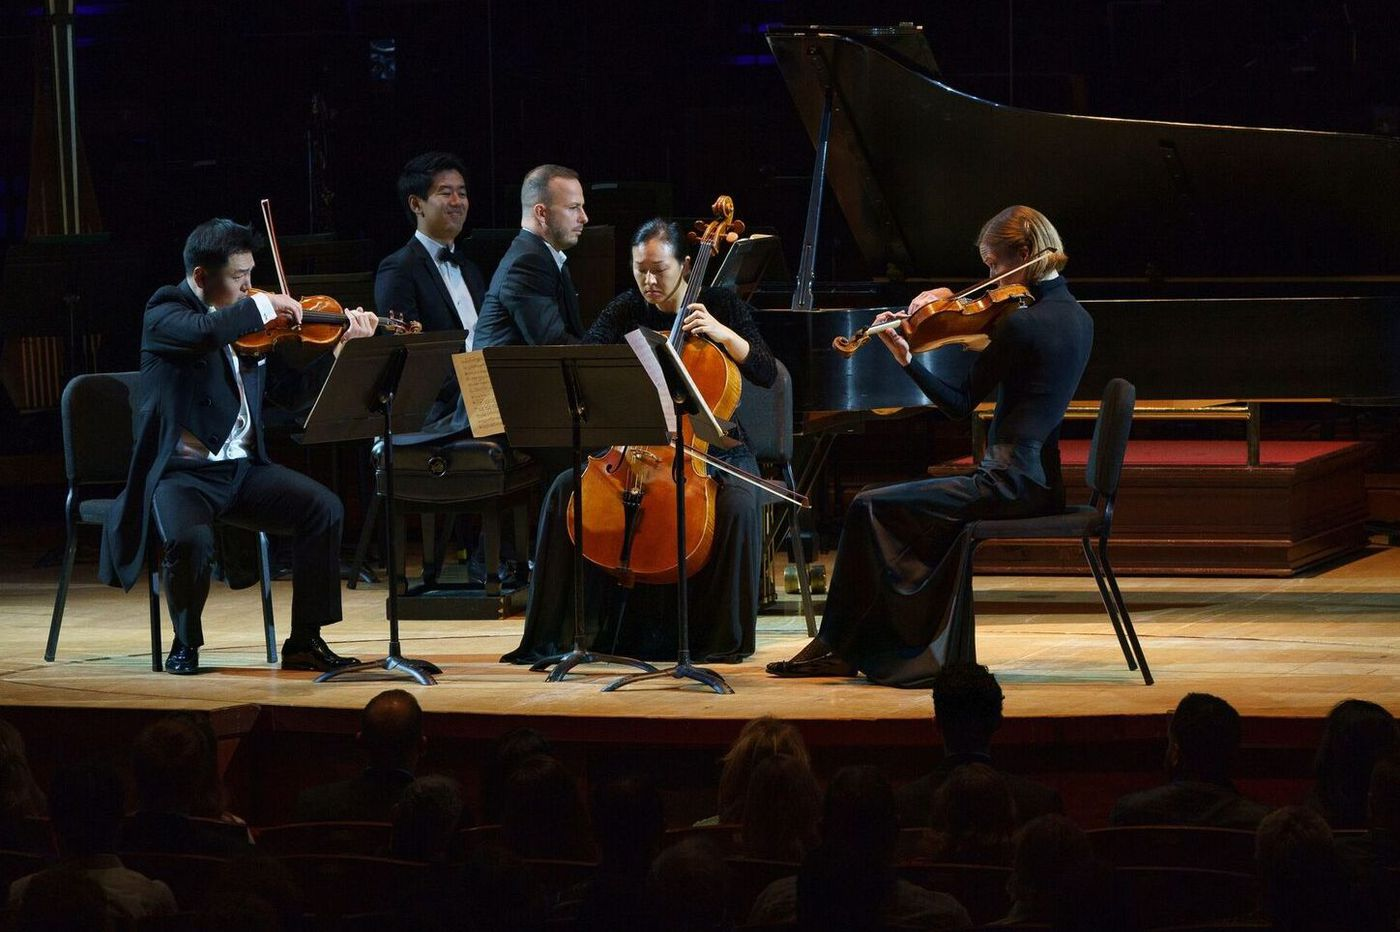 Philadelphia Orchestra opening gala: Yannick at the keyboard and a youthful surprise in the audience